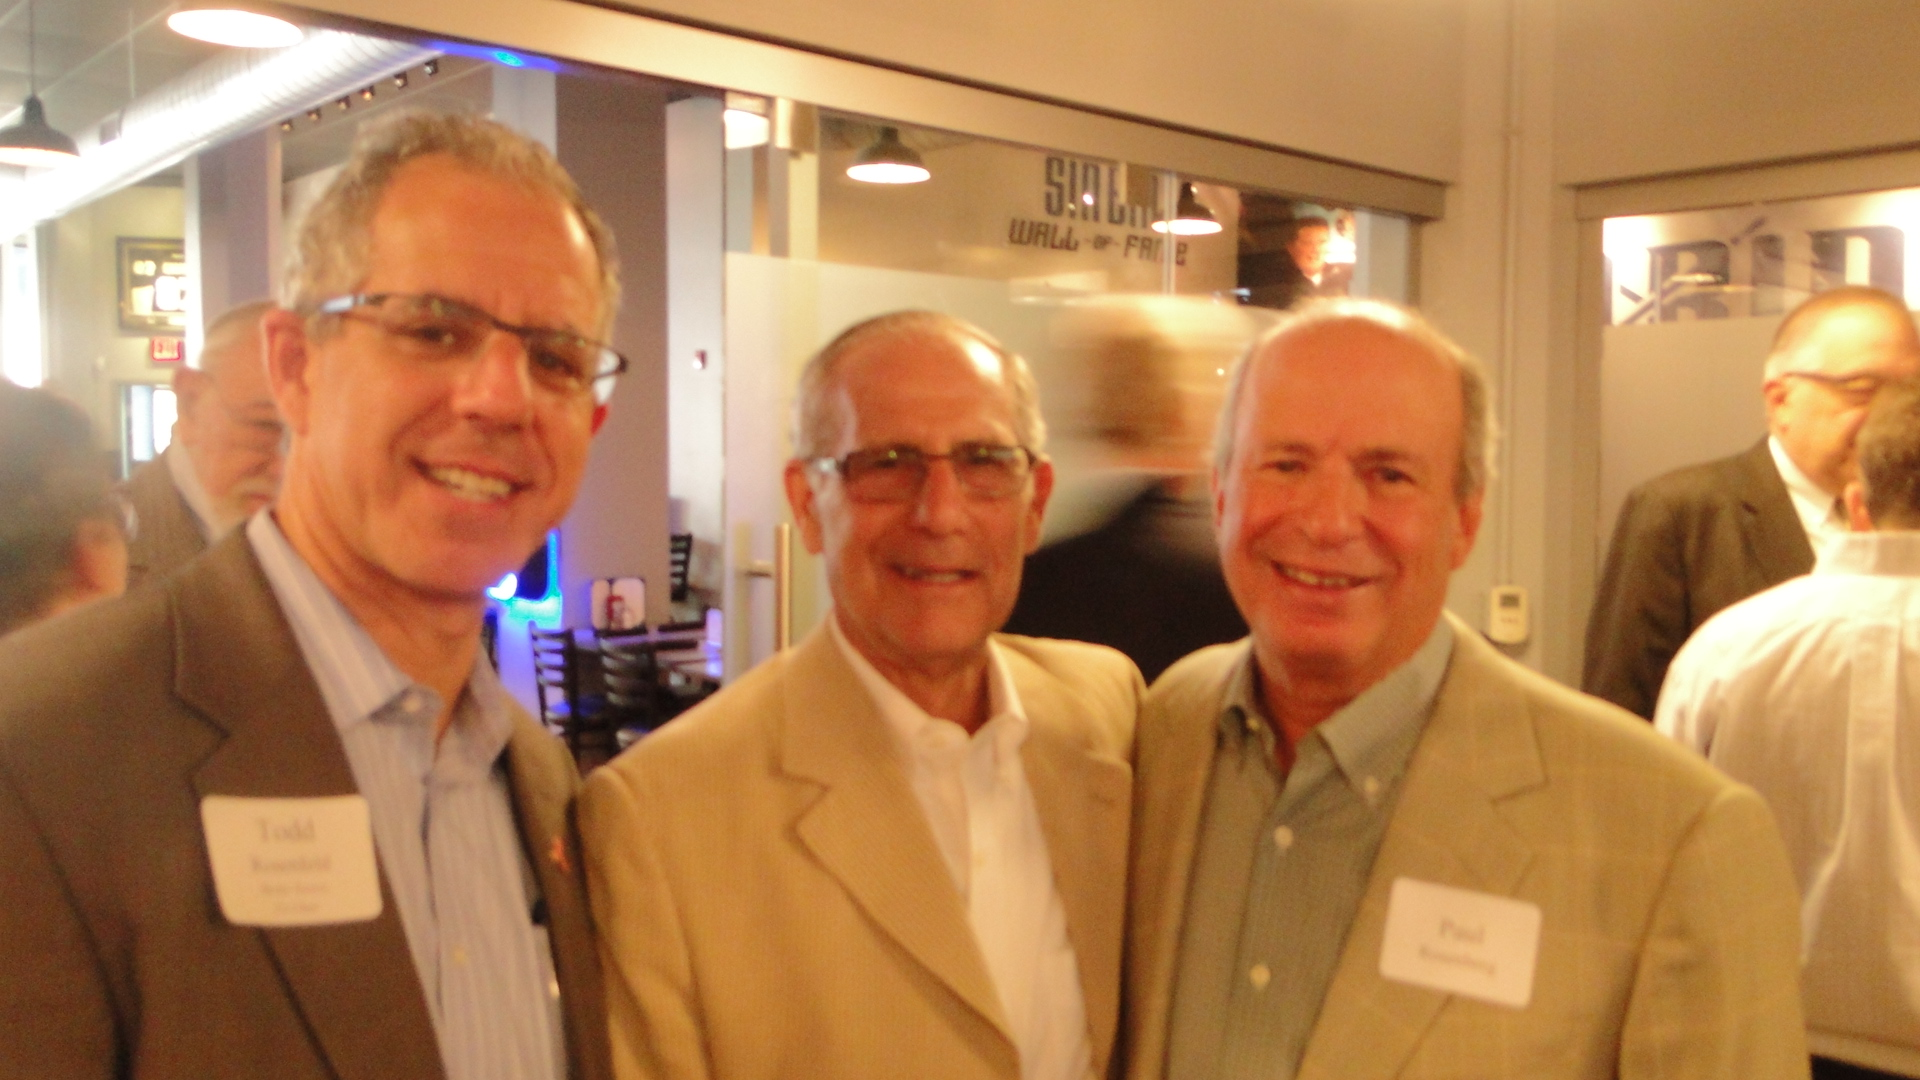 Todd Rosenfeld, David Steinbach, and Paul Rosenberg